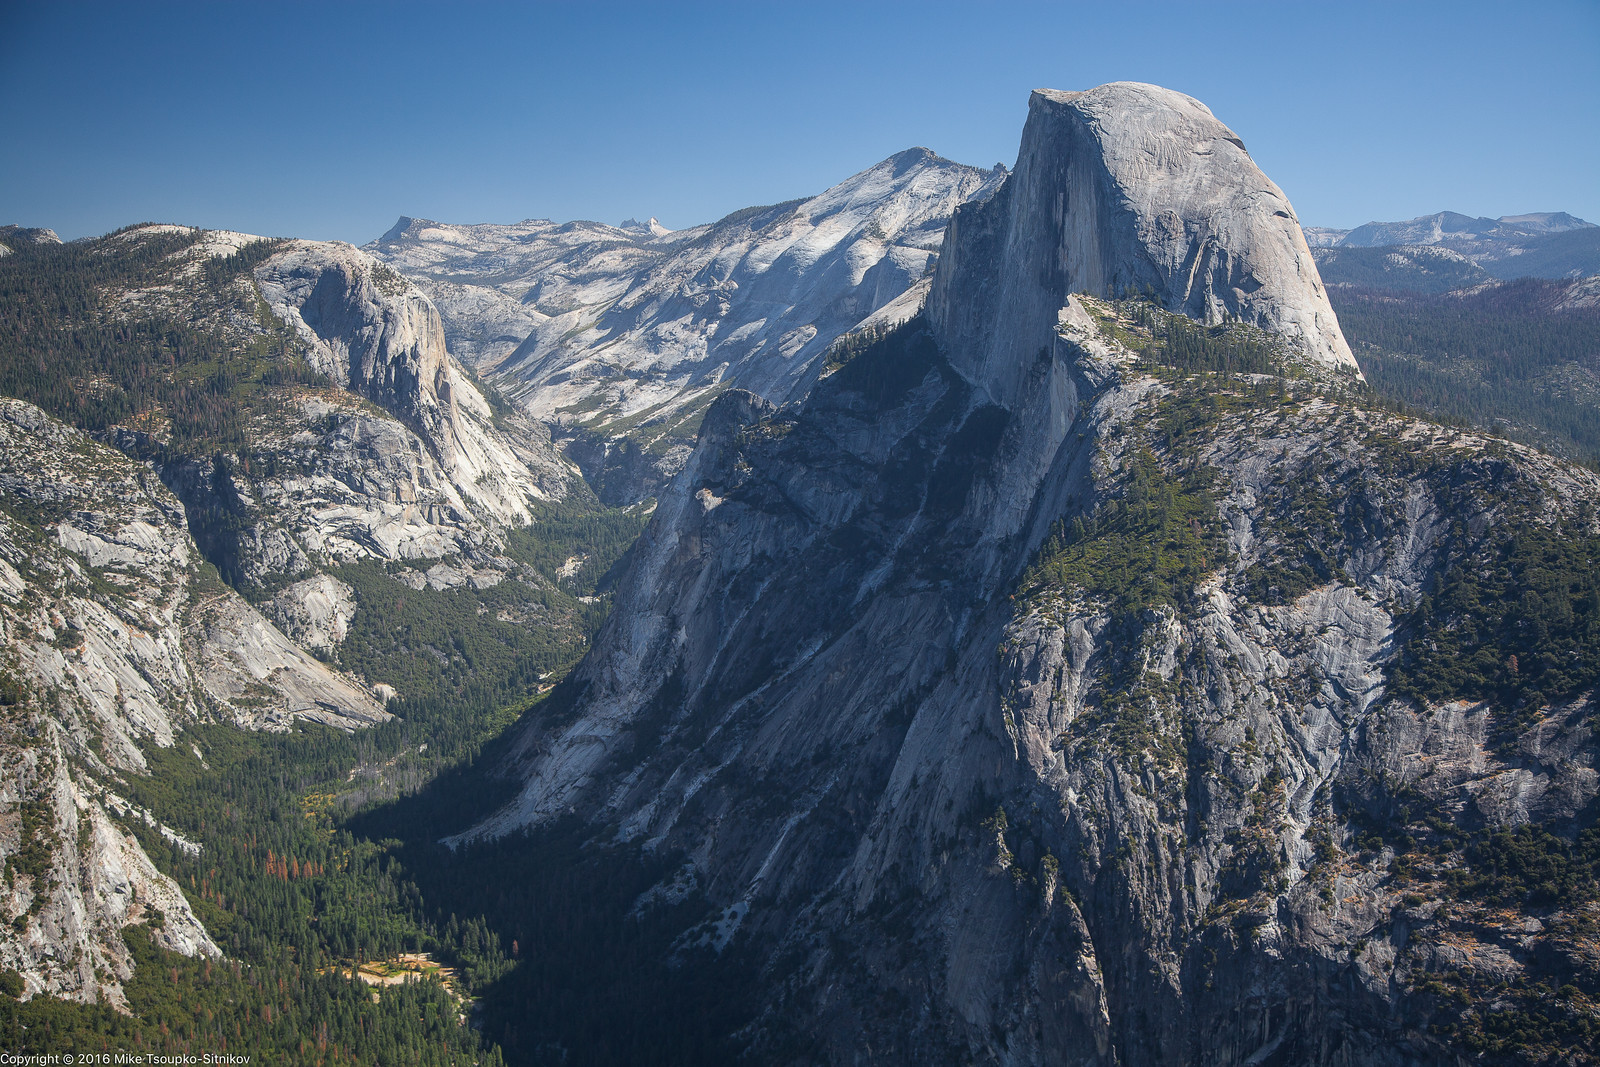 A View from Glacier Point